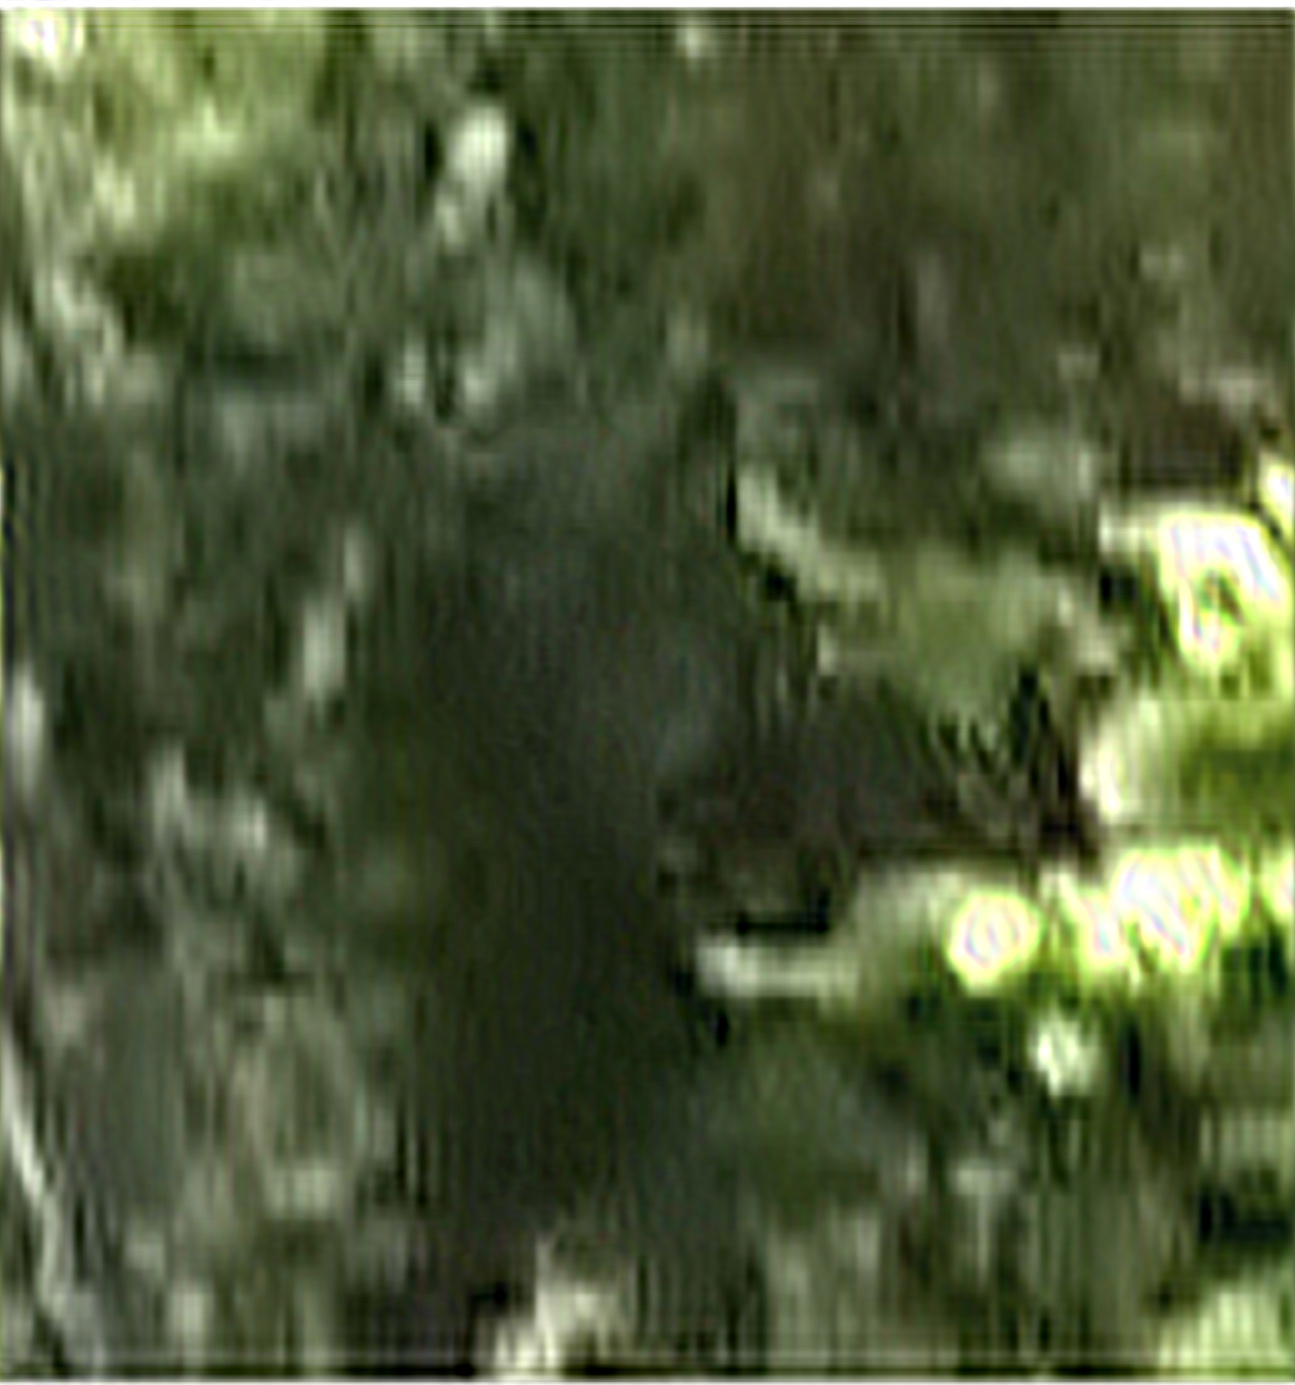 Dogman - The Monsters are Real: Possible Dogman Captured